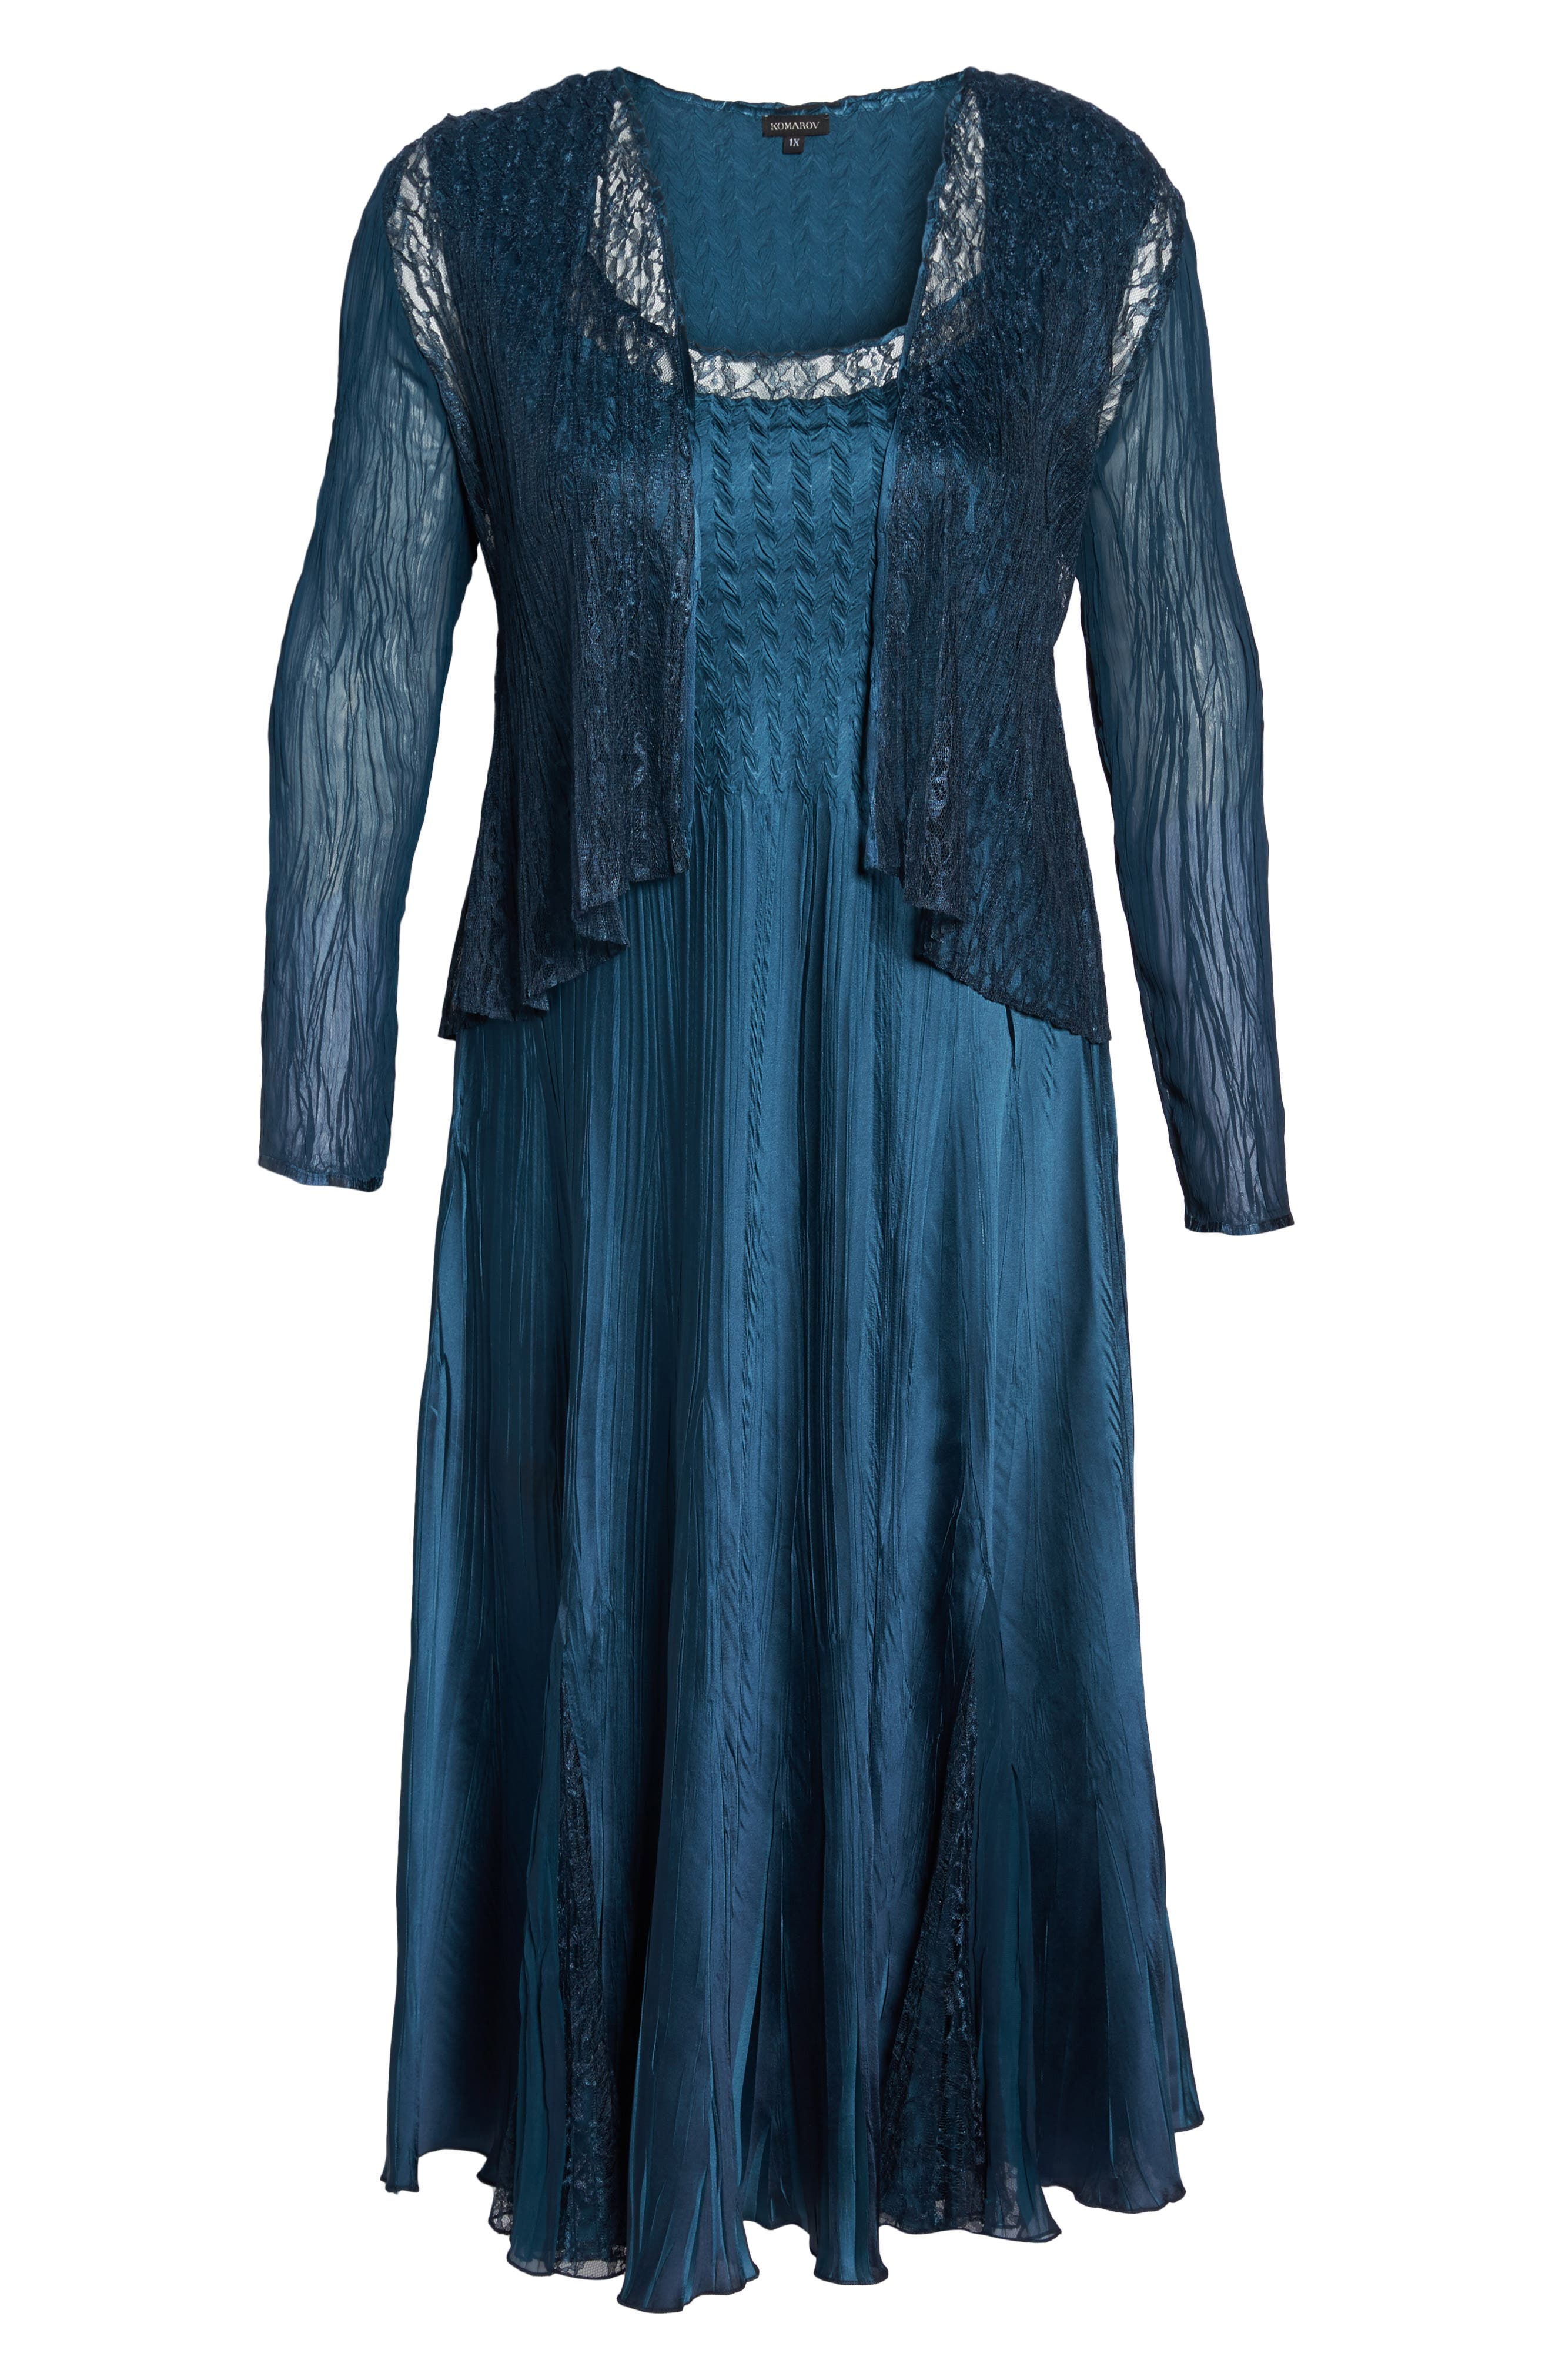 Lace Front Dress with Jacket,                             Alternate thumbnail 6, color,                             Moroccan Blue Ombre